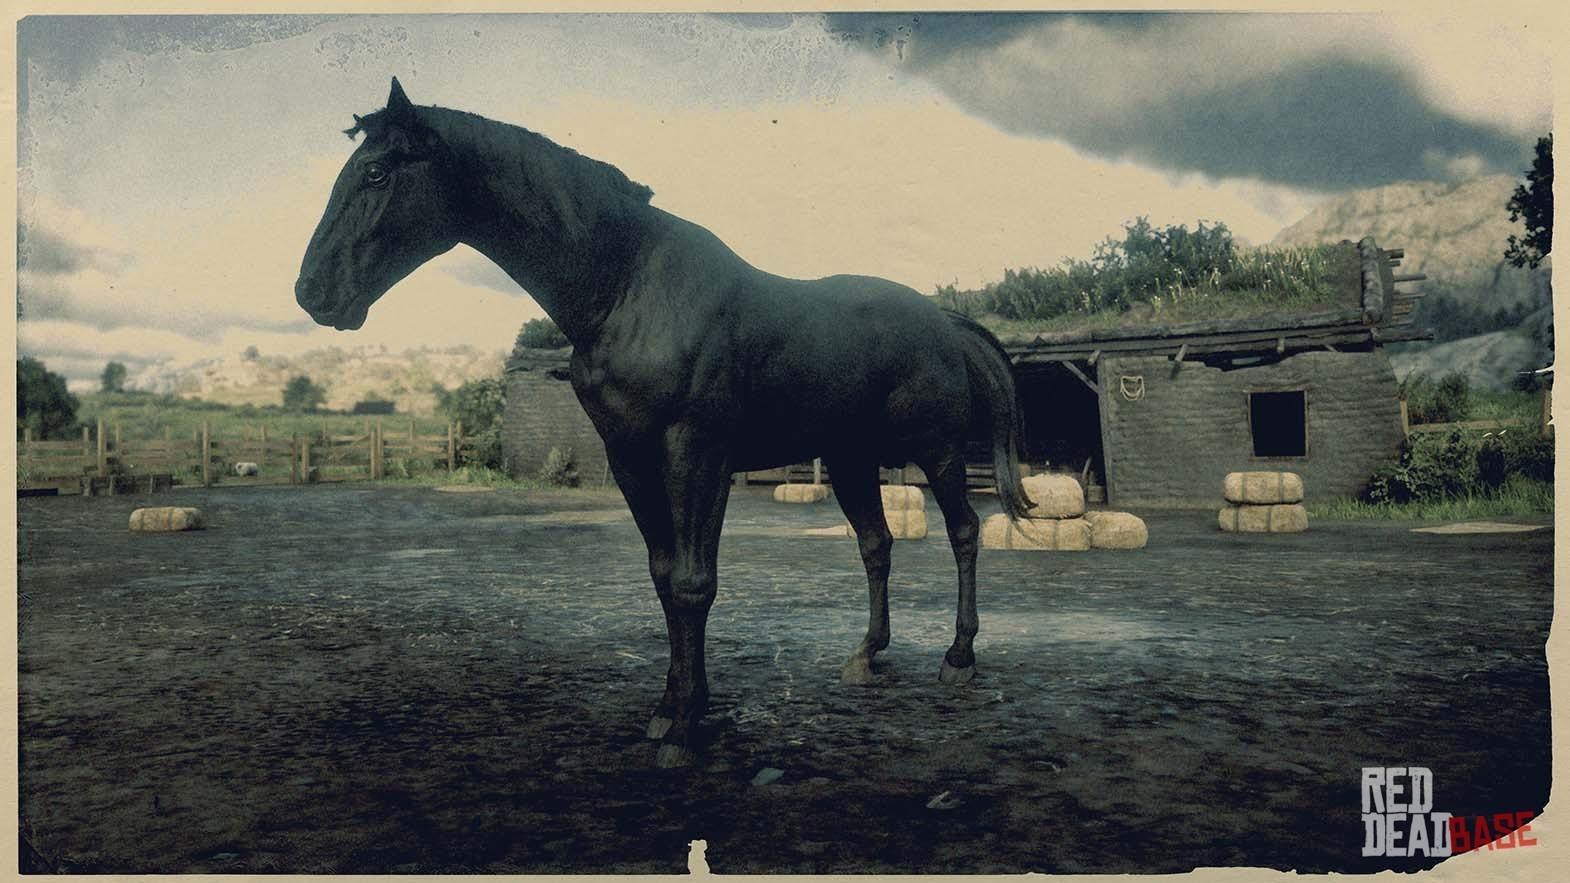 American Standardbred Red Dead Redemption 2 Horse Breeds